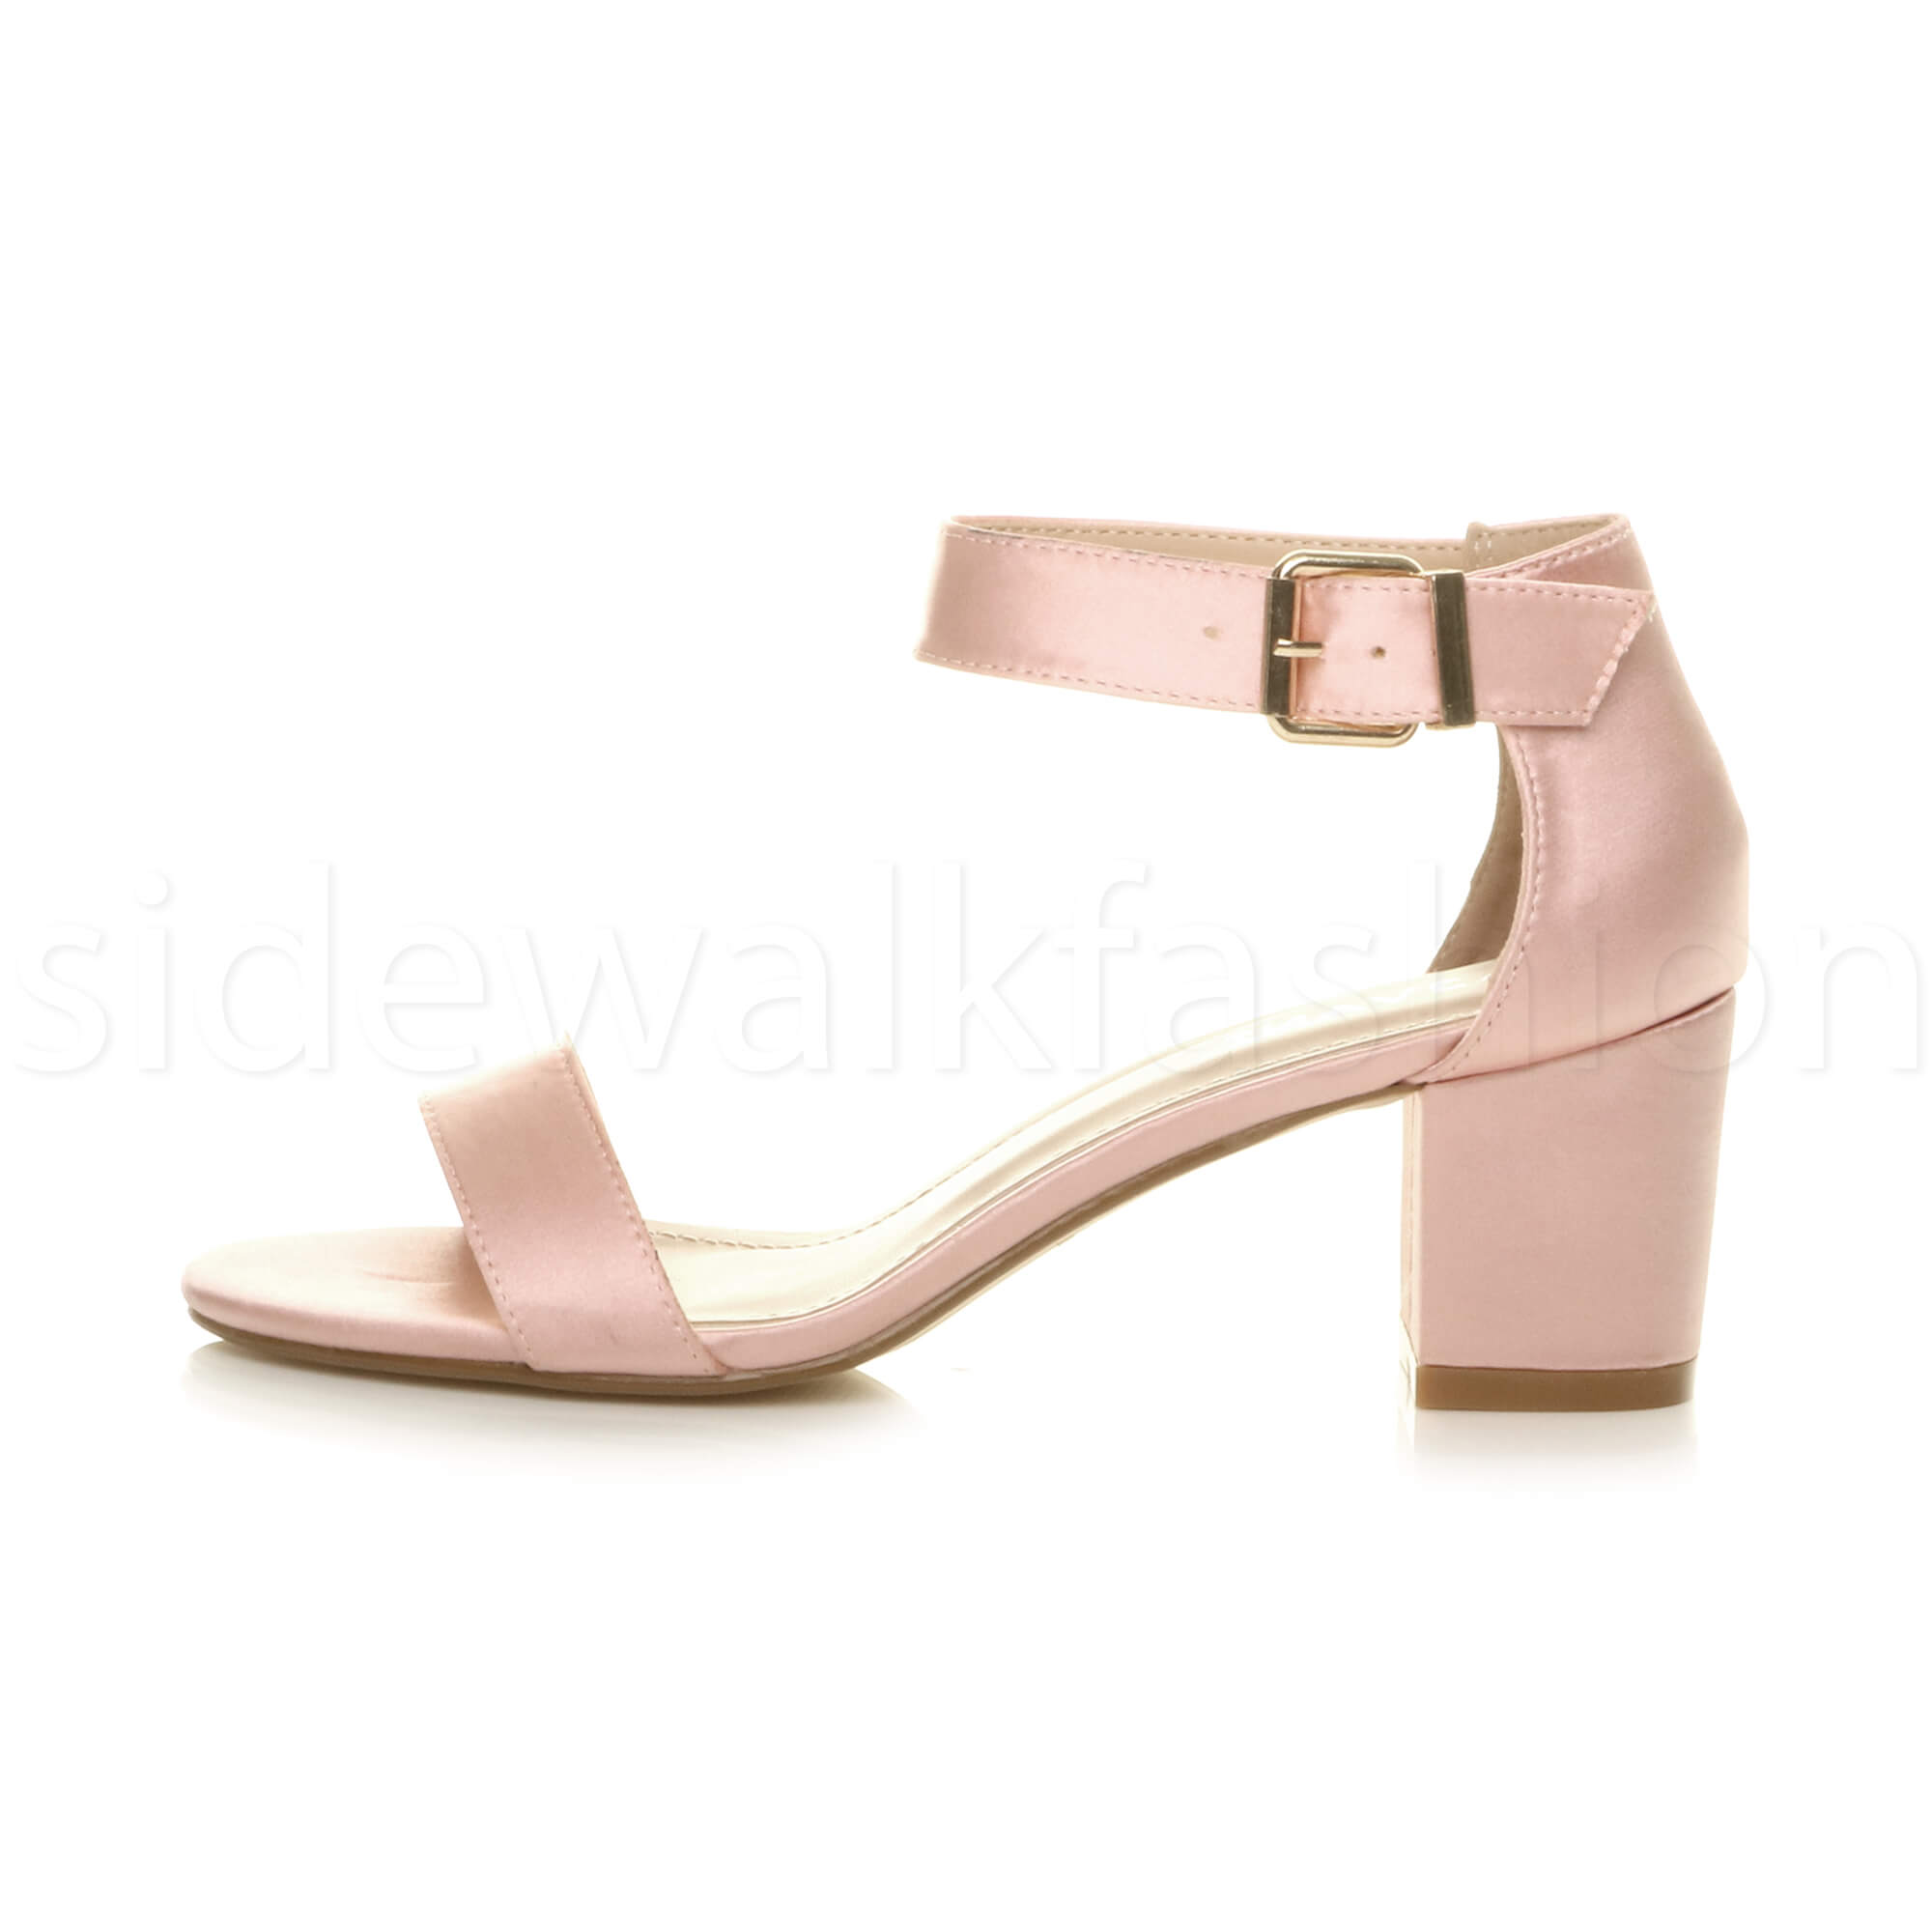 Womens-ladies-low-mid-heel-buckle-ankle-strap-peep-toe-party-strappy-sandal-size thumbnail 3